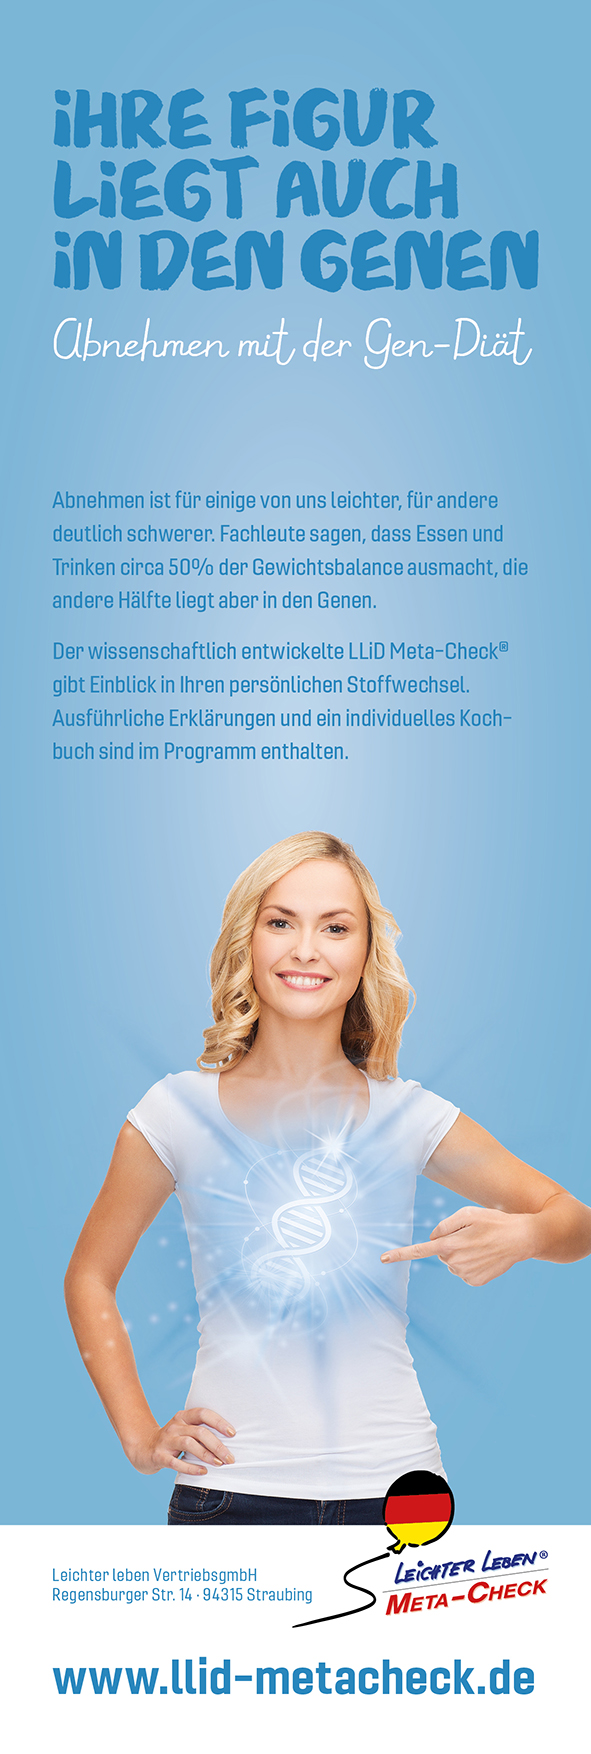 GEN-Diät - Flyer LLiD-metacheck